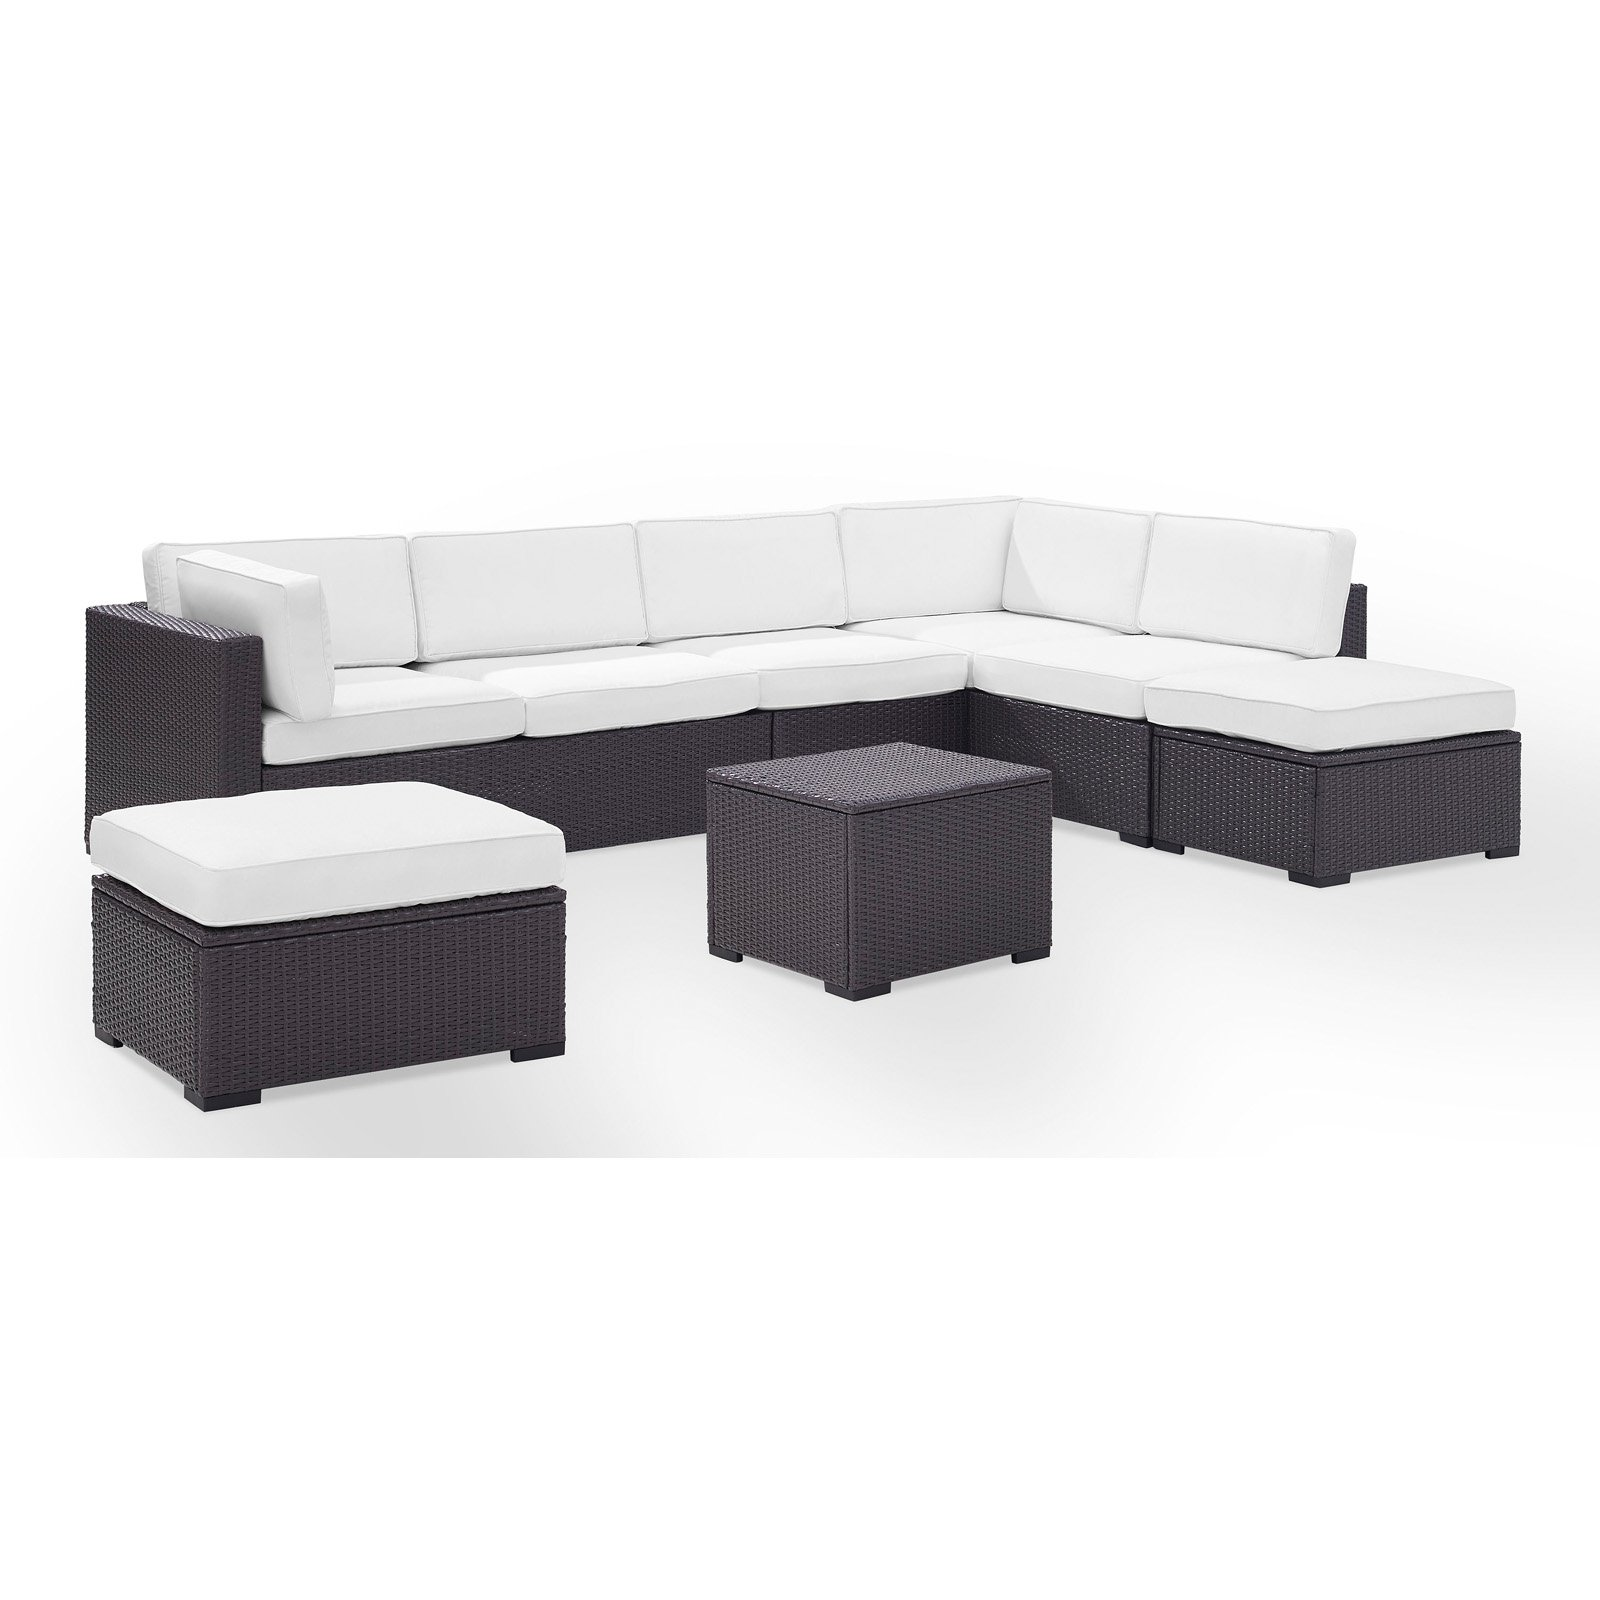 Crosley Furniture Biscayne 7 Person Outdoor Wicker Seating Set In White    Two Loveseats, One Armless Chair, Coffee Table, Two Ottomans